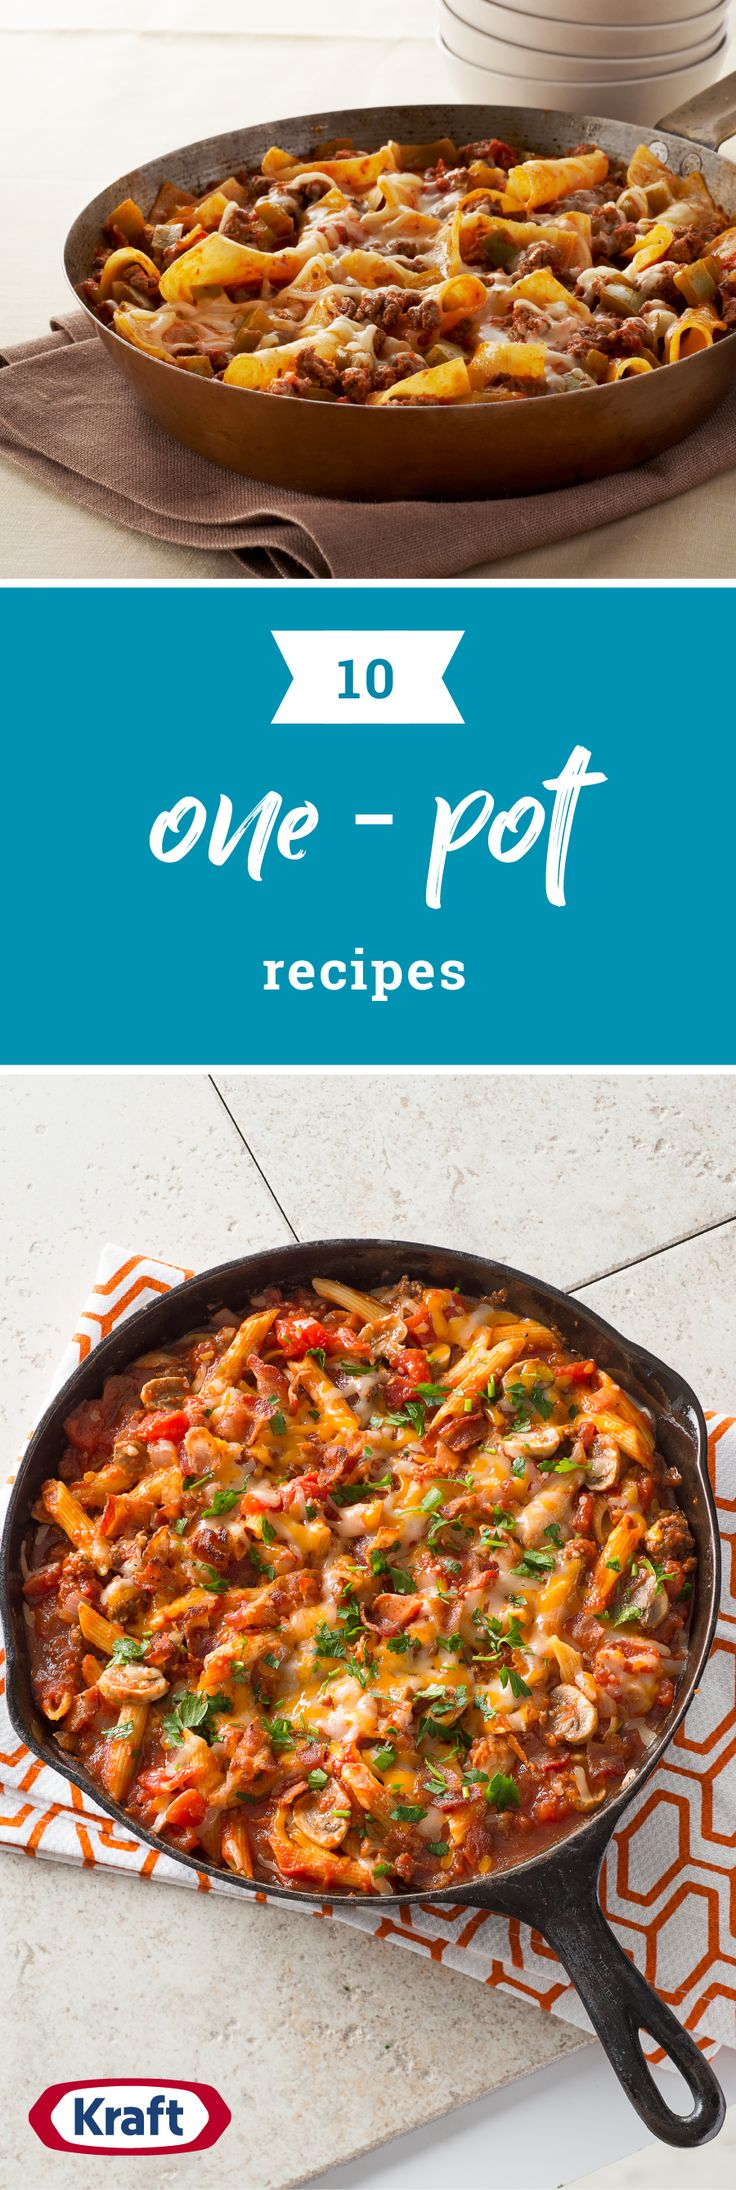 10 Best One-Pot Recipes – Headline your next meal with a recipe that's easy to make and easy to clean up! No wonder these simple and tasty recipes are a family favorite on your dinner table. Featuring chicken, beef, pork, and pasta, there are so many dishes to enjoy with this collection.